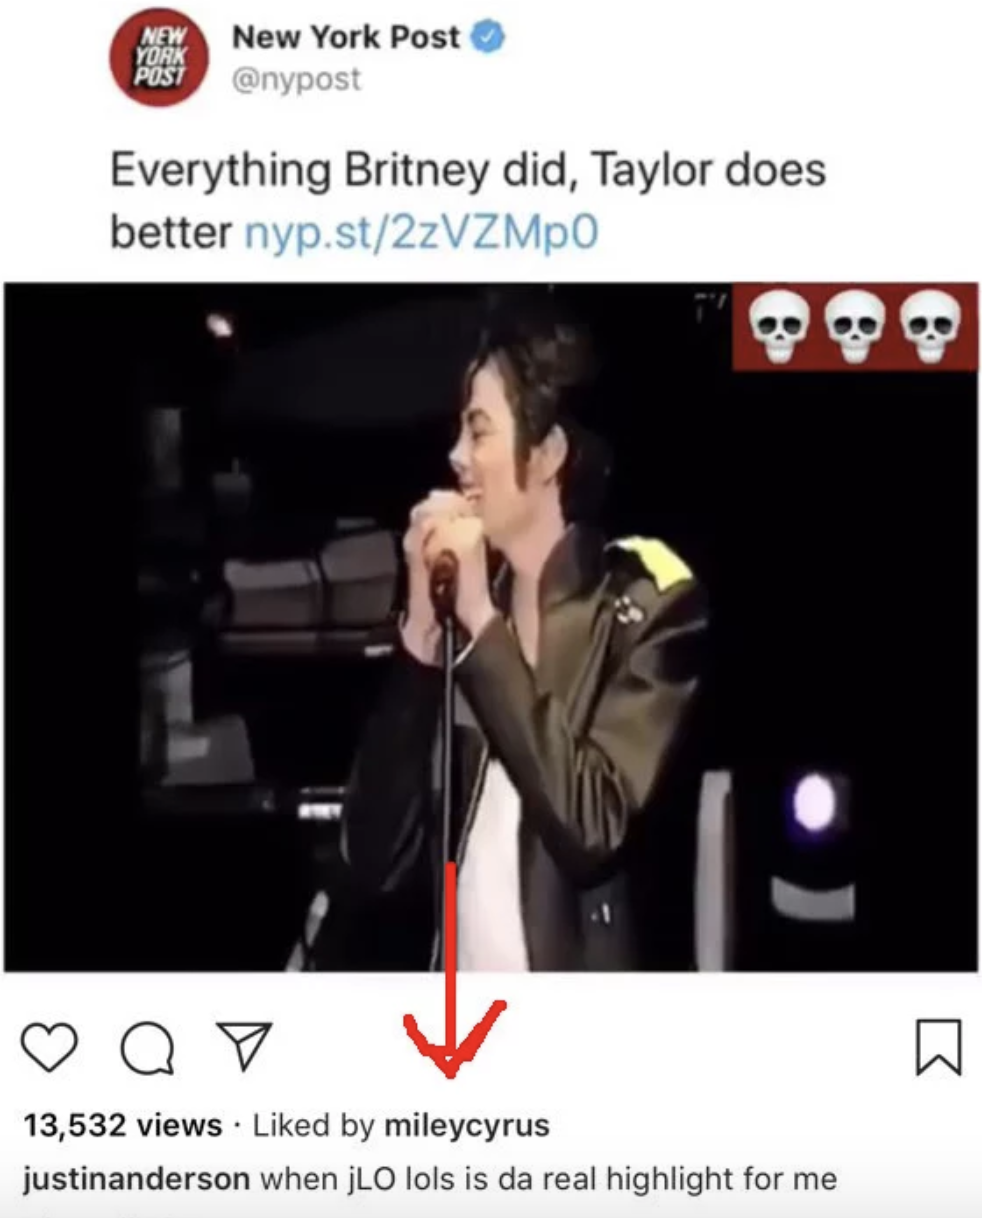 When Miley Cyrus liked this post that shaded Taylor Swift: -  (The video is all people laughing.)